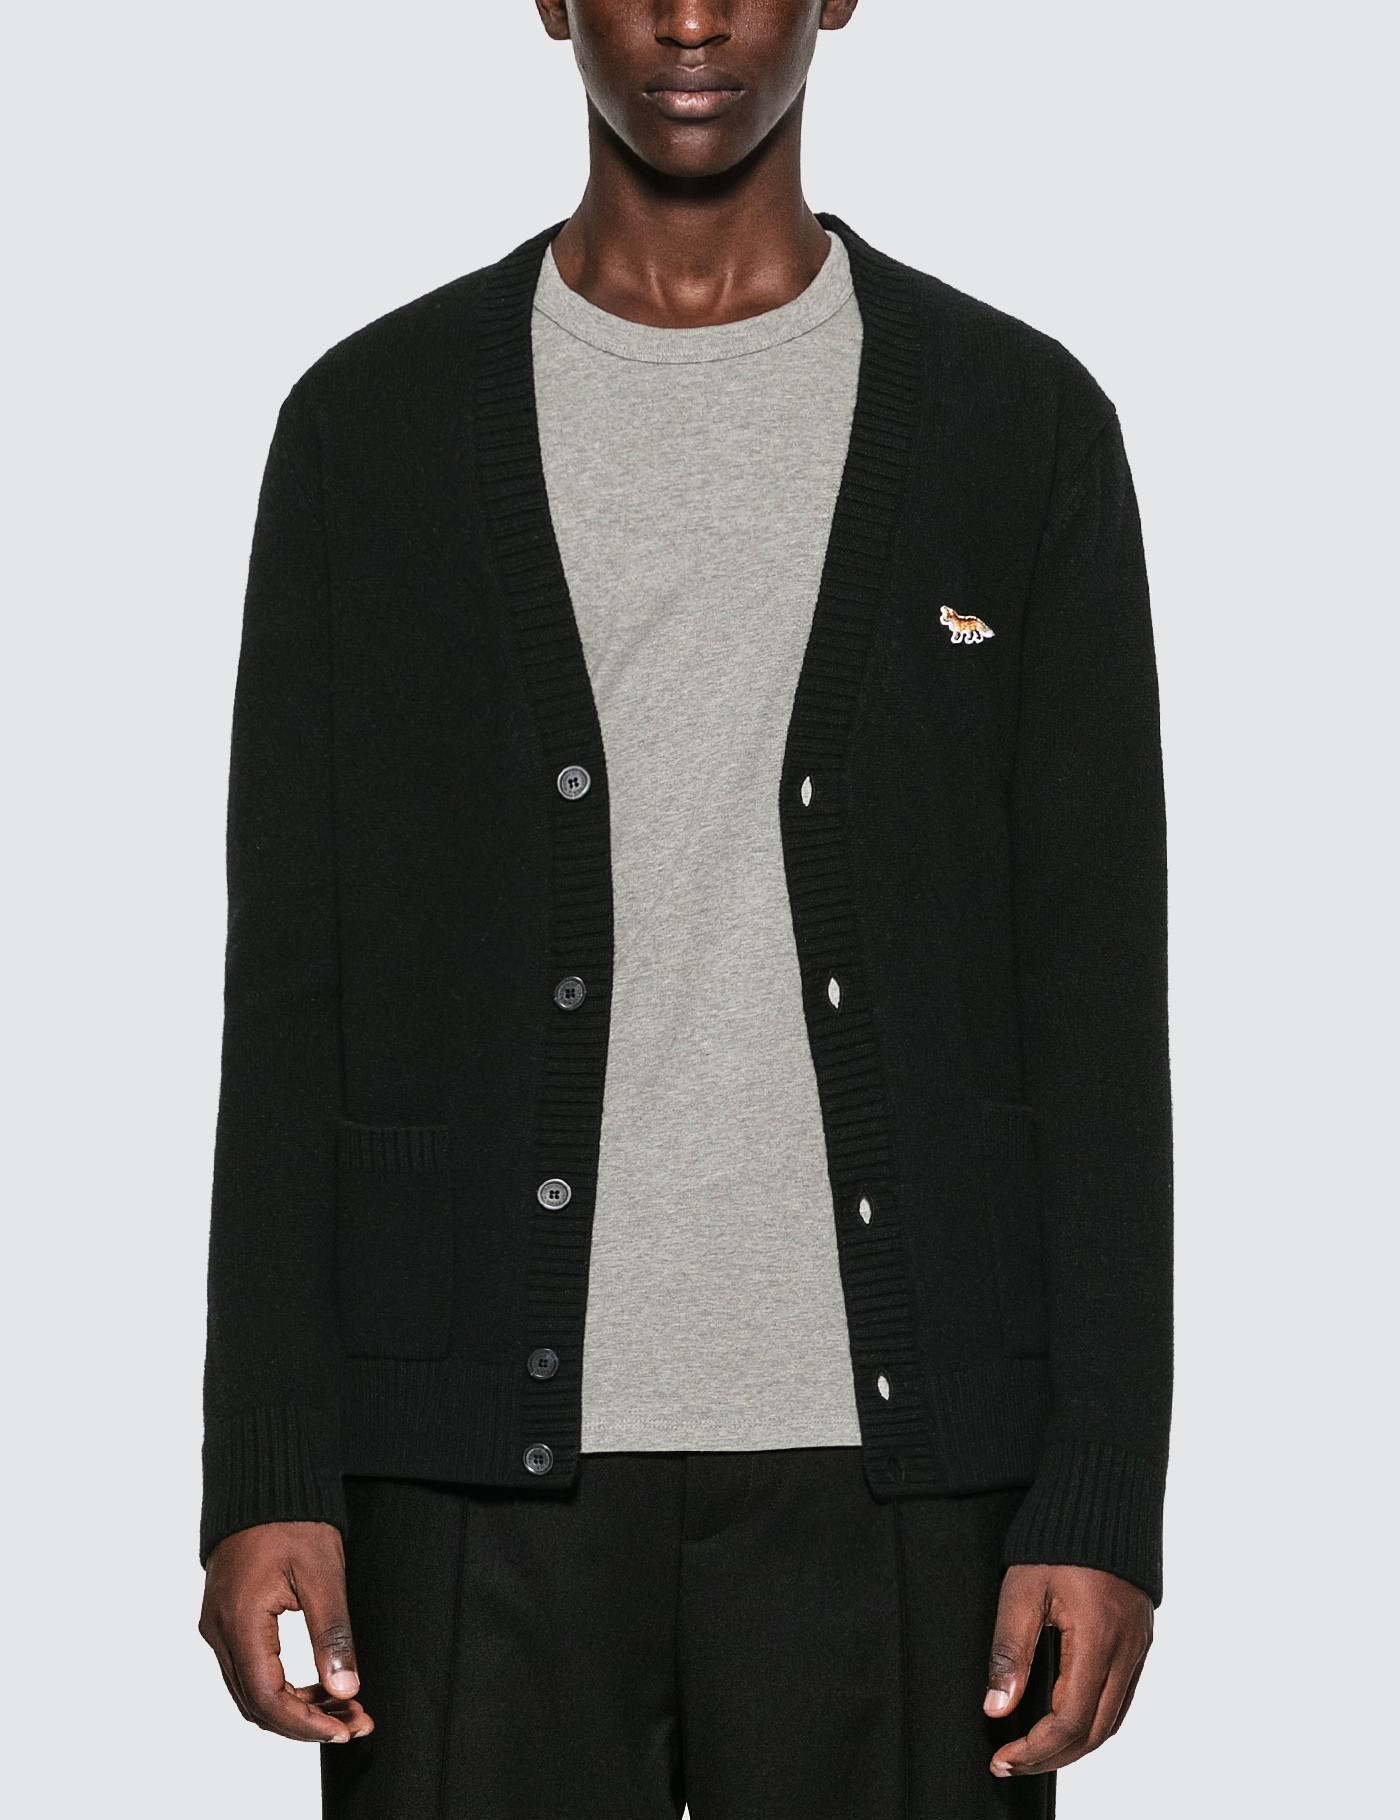 MAISON KITSUNE Embroidered Fox Lambswool Cardigan